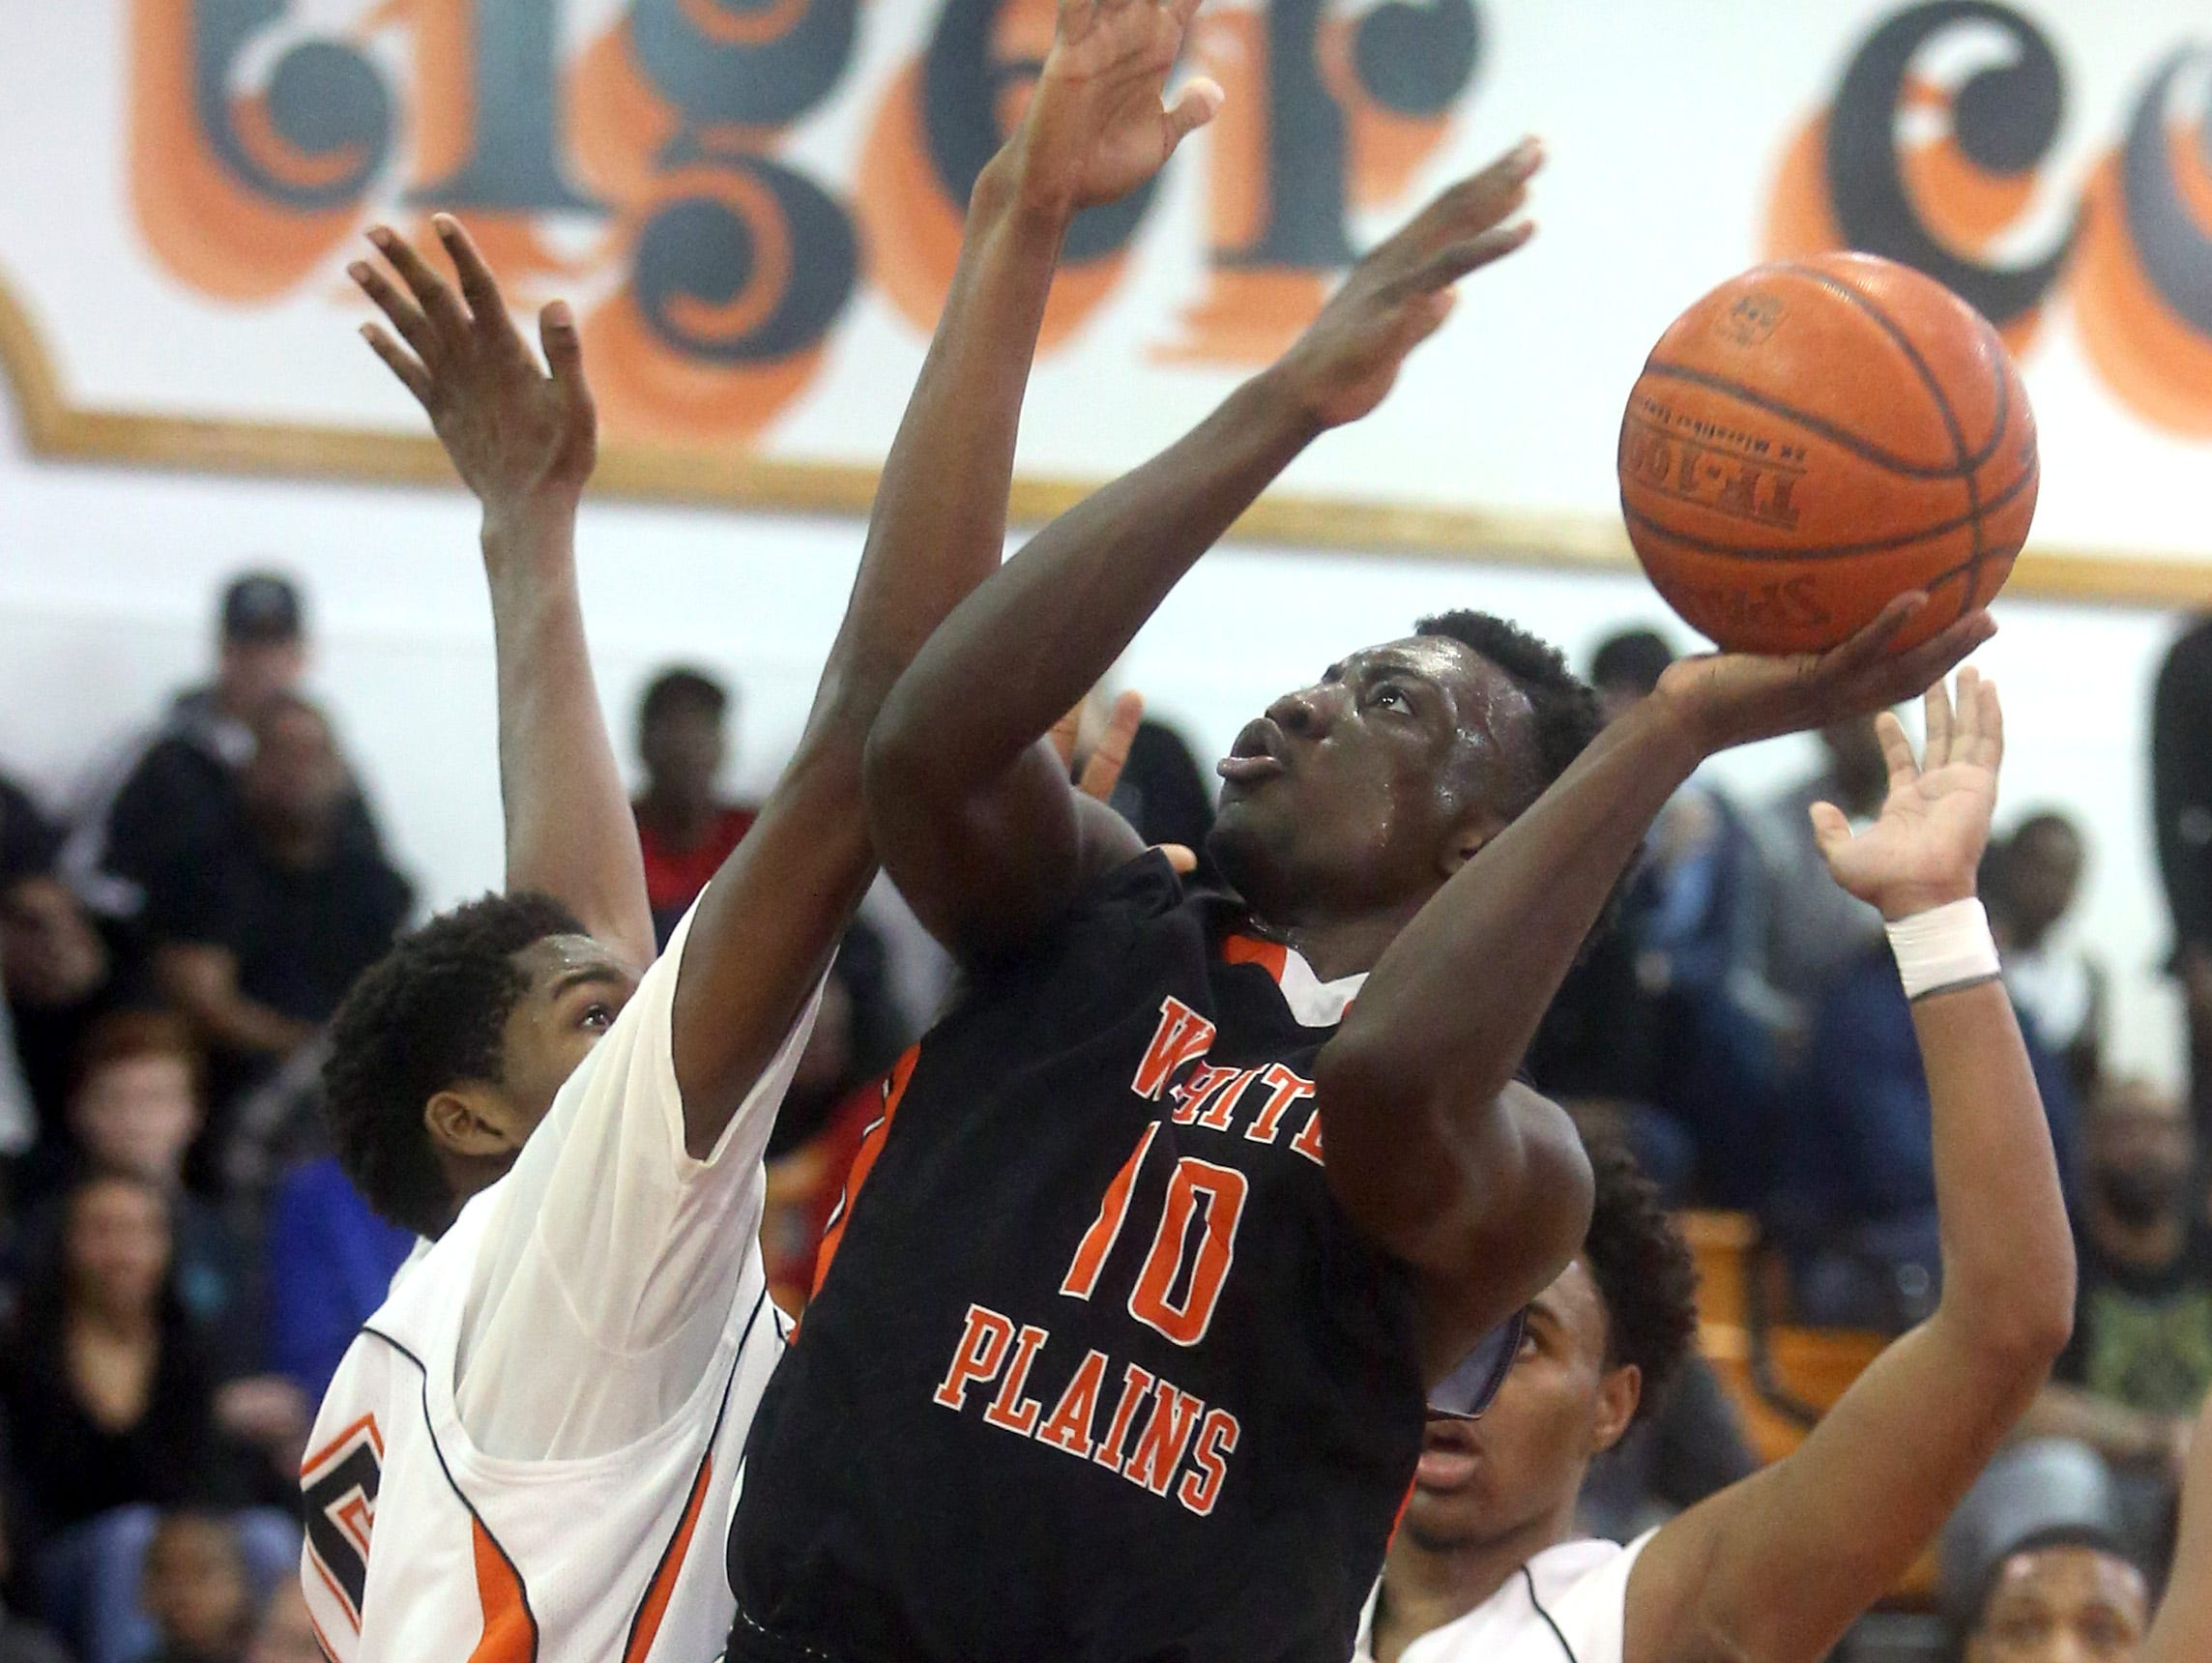 Lamar Noel of White Plains shoots over Mavenson Therneus of Spring Valley during a Class AA quarterfinal basketball game at Spring Valley High School Feb. 201, 2015. White Plains advanced to the Westchester County Center with an 85-78 victory.